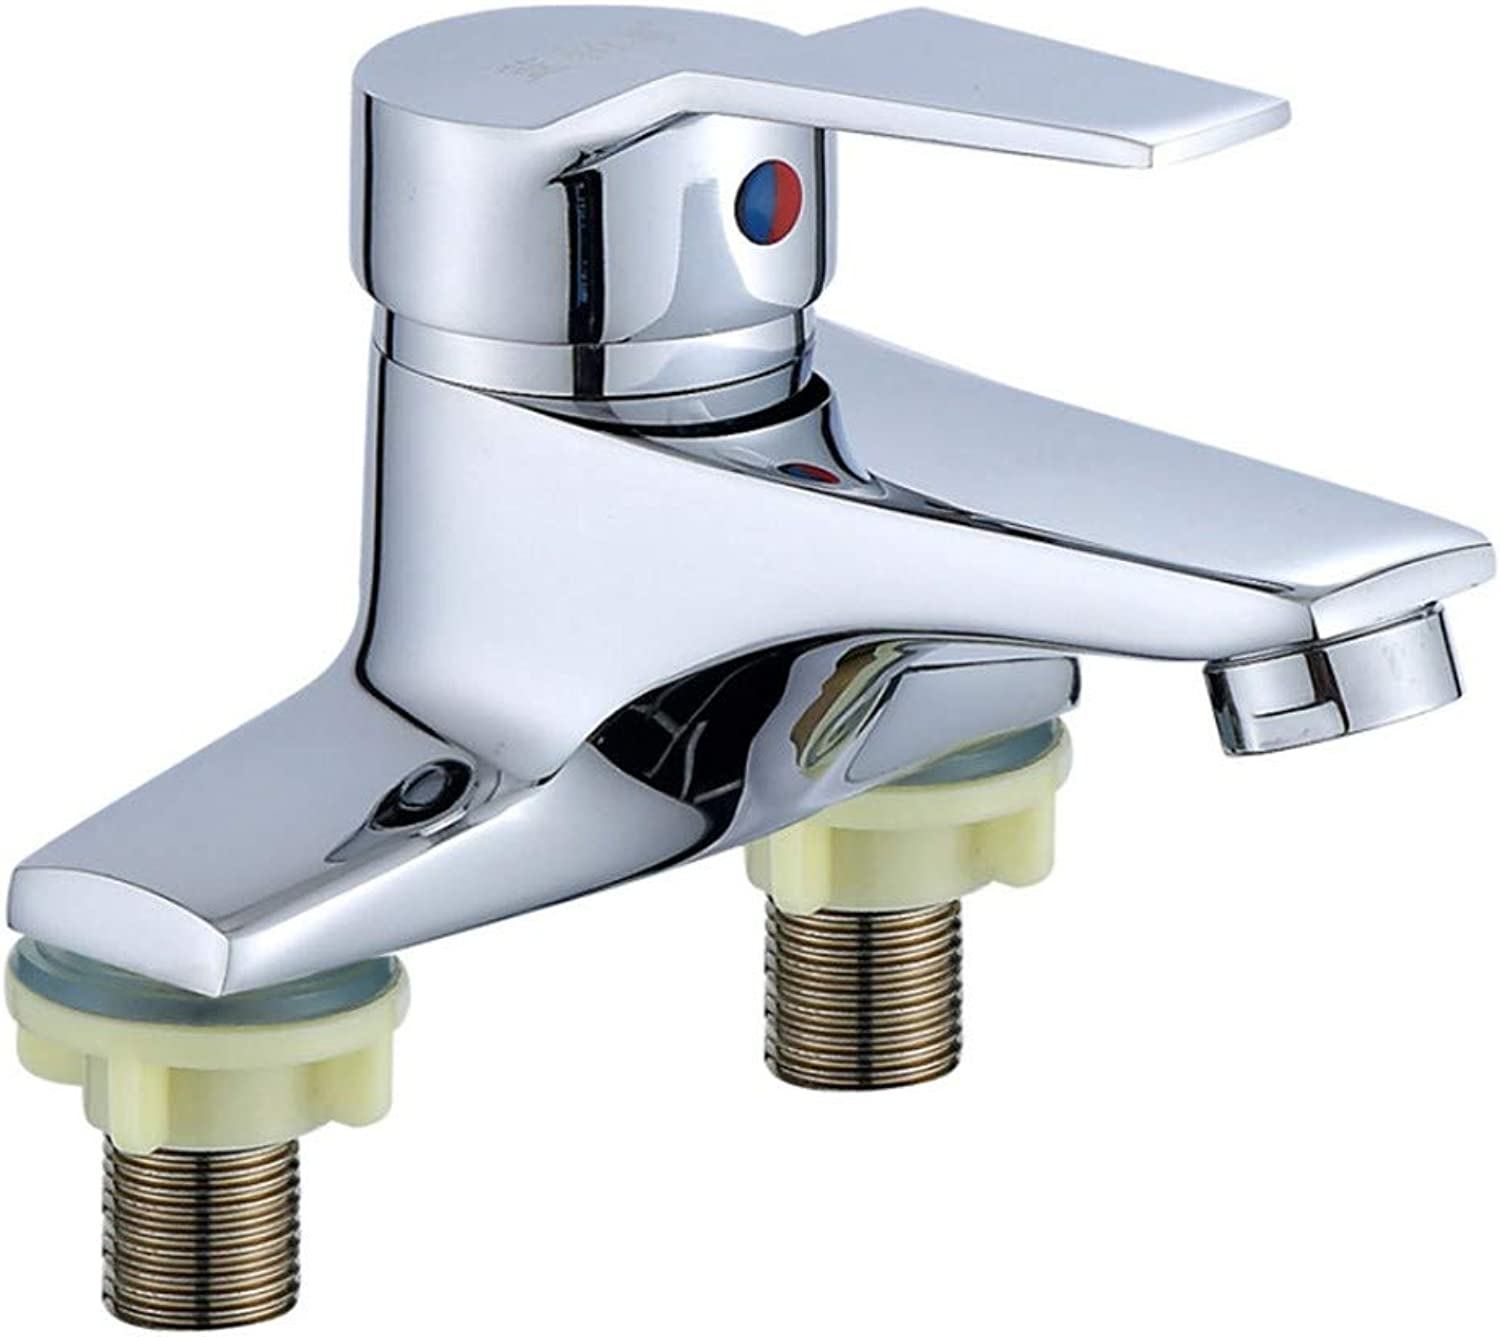 Basin Faucetcopper Double-Hole Basin Faucet Cold and Hot Faucet